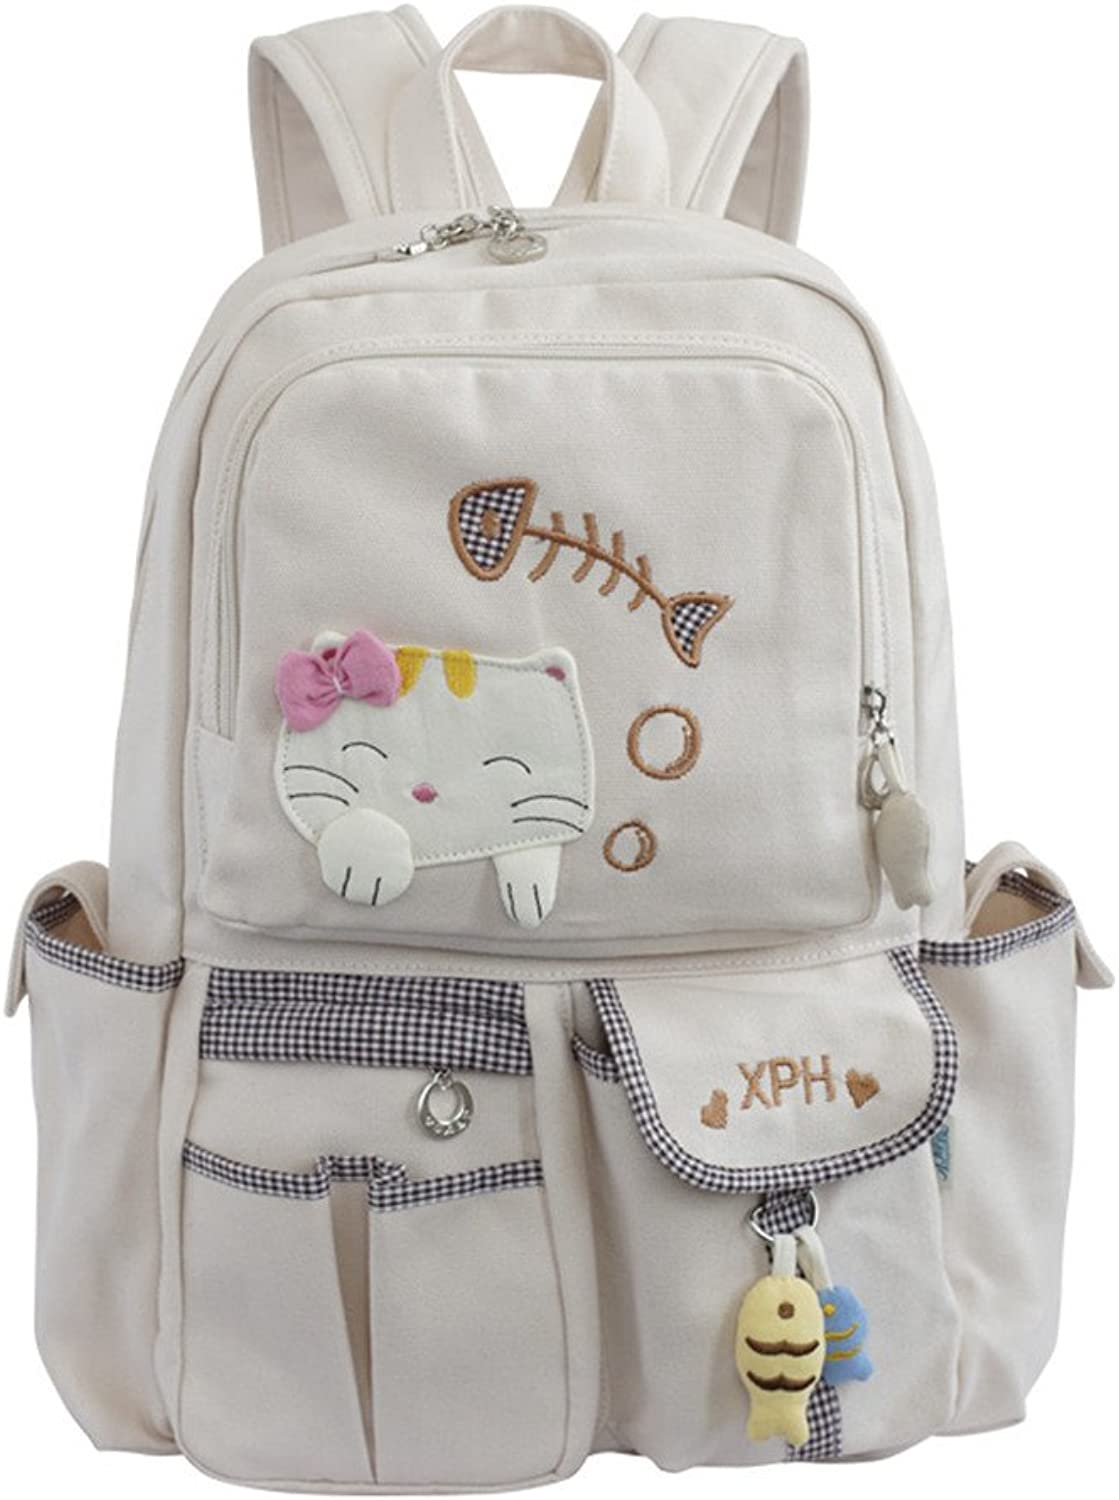 Julianana Handmade Sewing Canvas Backpack Travel Daypack For Girls Cute Cartoon Cat